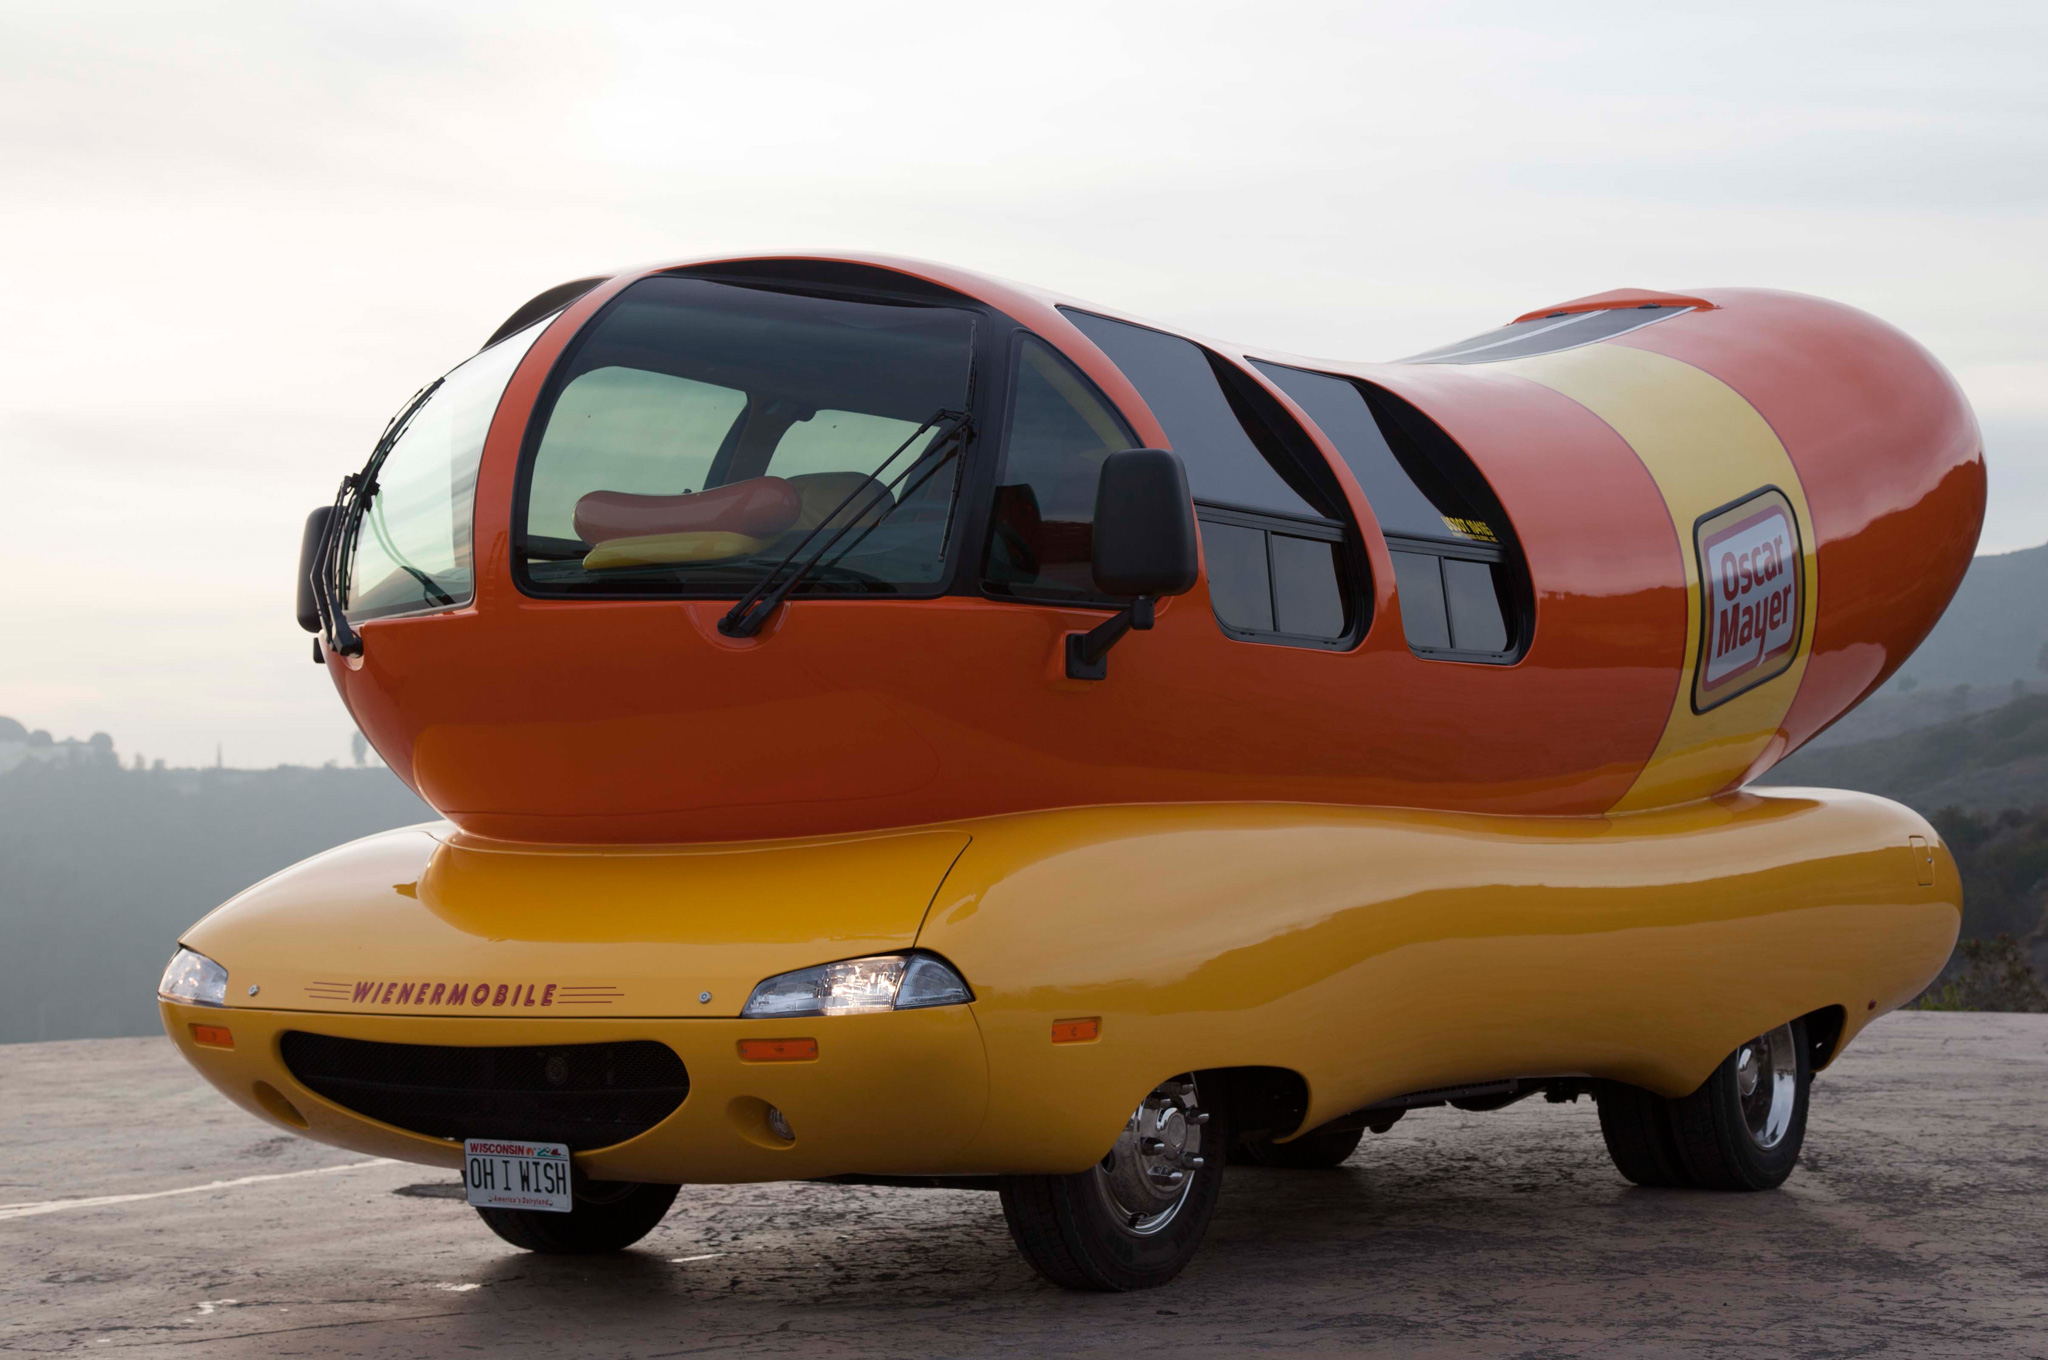 Worst Cars Ever Sold In America - The Wurst Car!